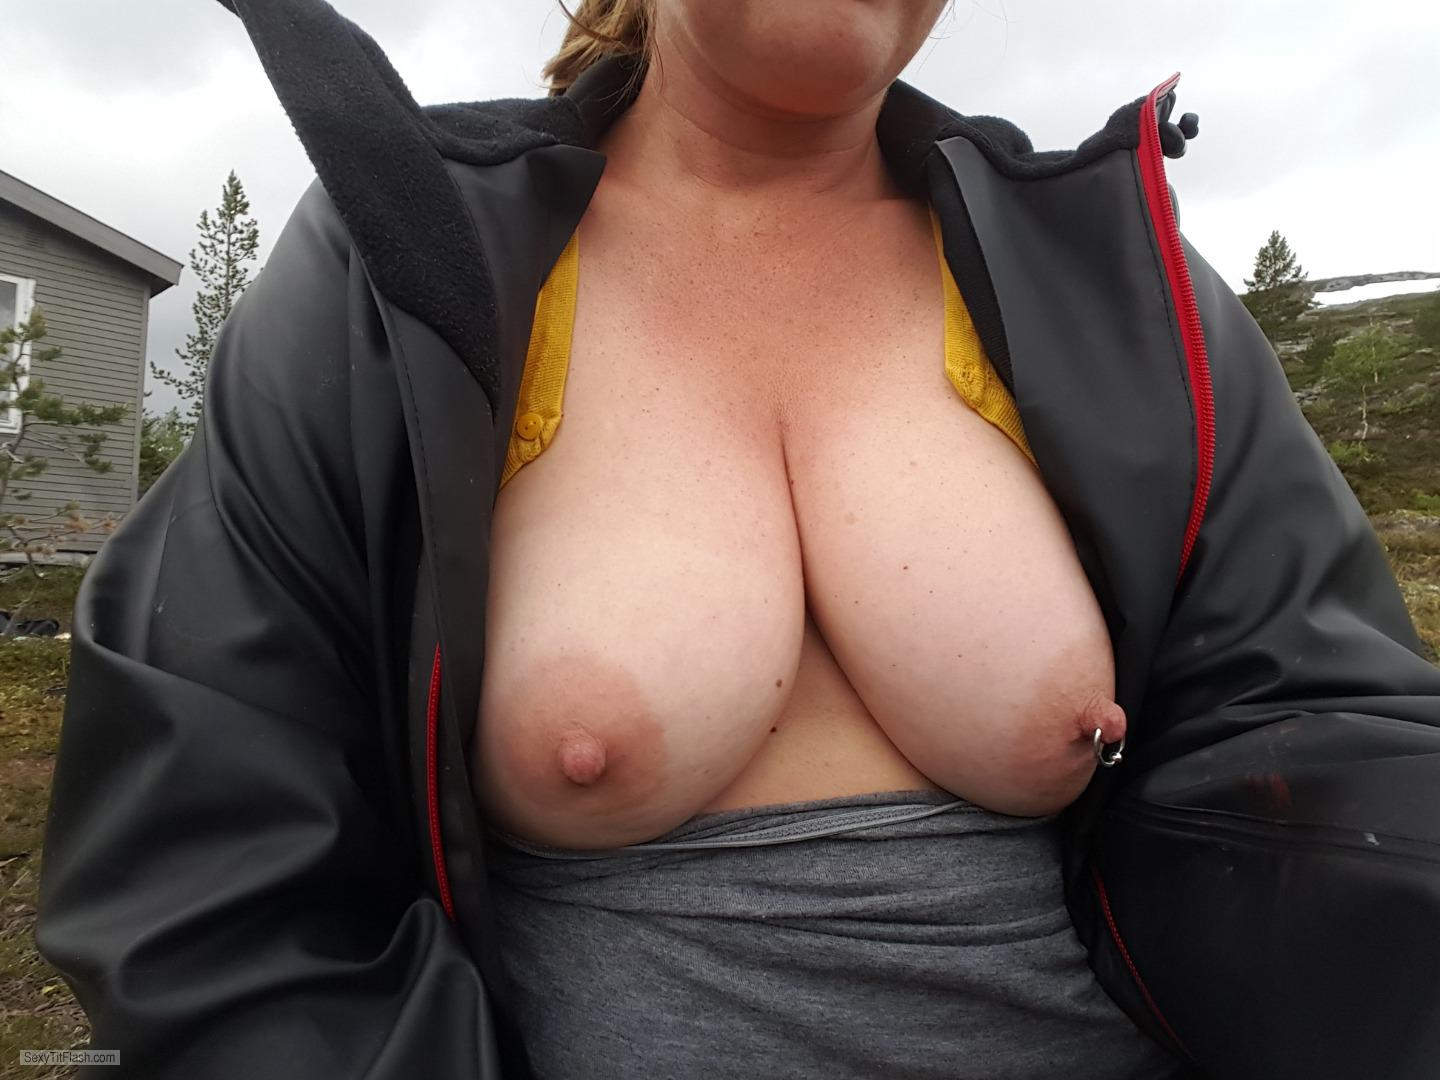 Tit Flash: My Big Tits (Selfie) - Happytits from NorwayPierced Nipples